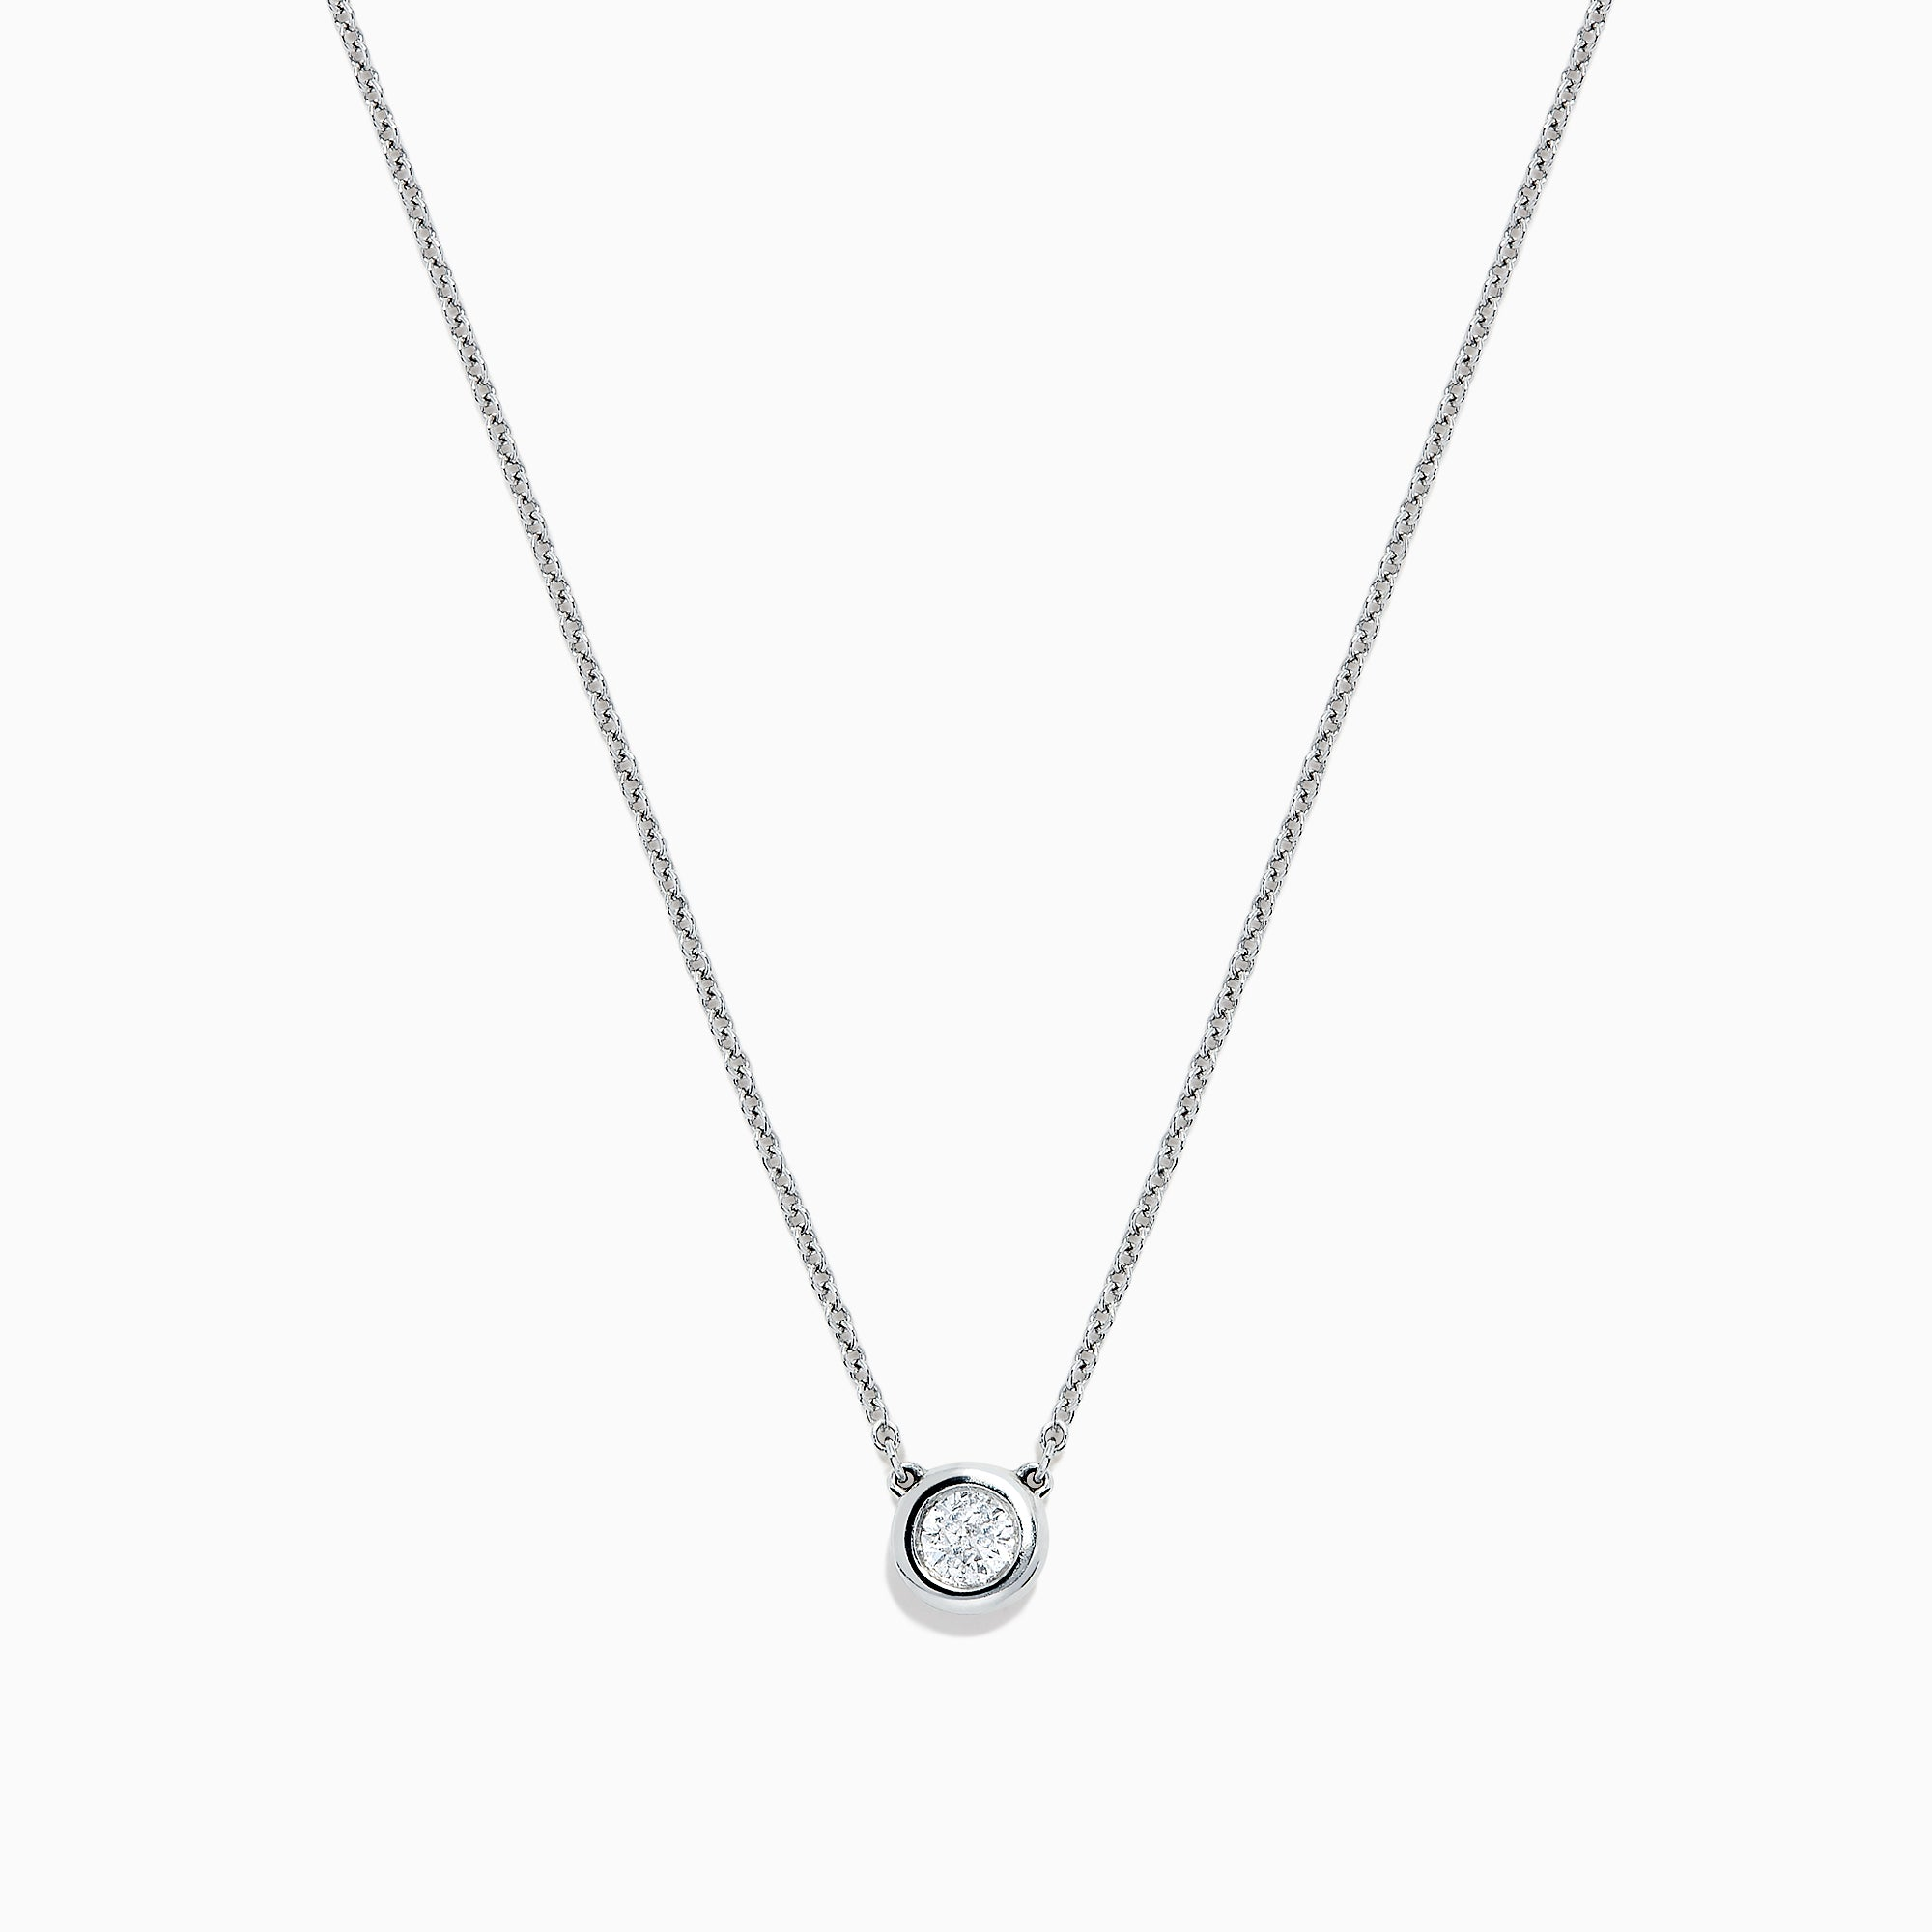 Effy Pave Classica 14K White Gold Diamond Bezel Set Necklace, 0.20 TCW